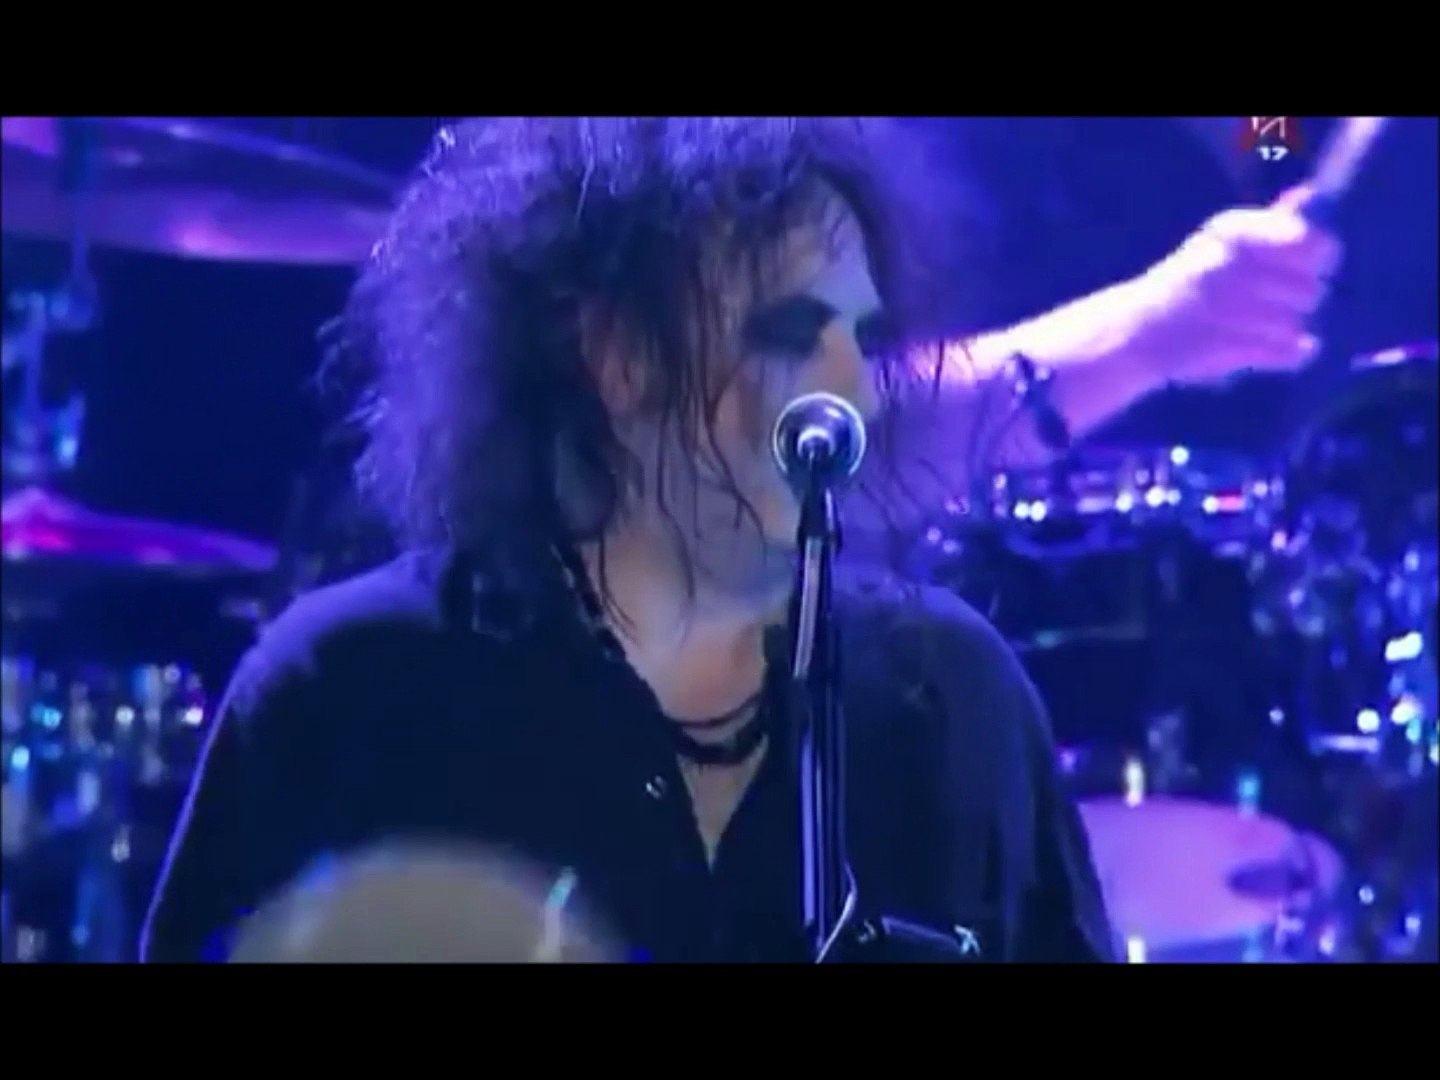 The Cure - Plainsong - Live (2008)